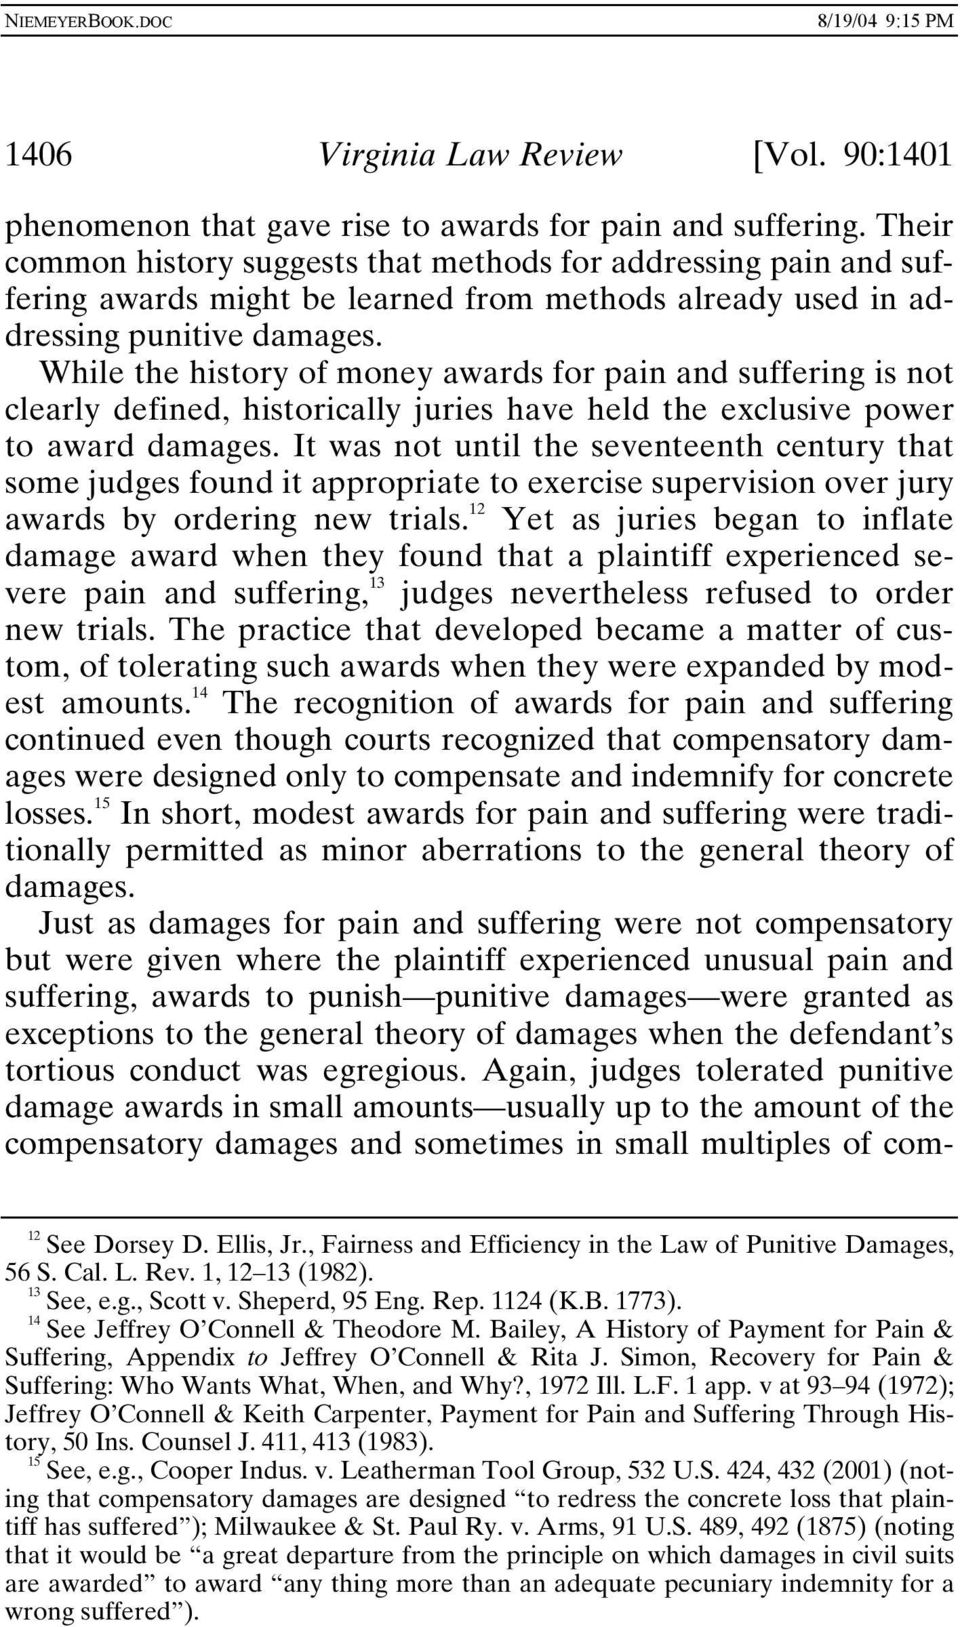 While the history of money awards for pain and suffering is not clearly defined, historically juries have held the exclusive power to award damages.